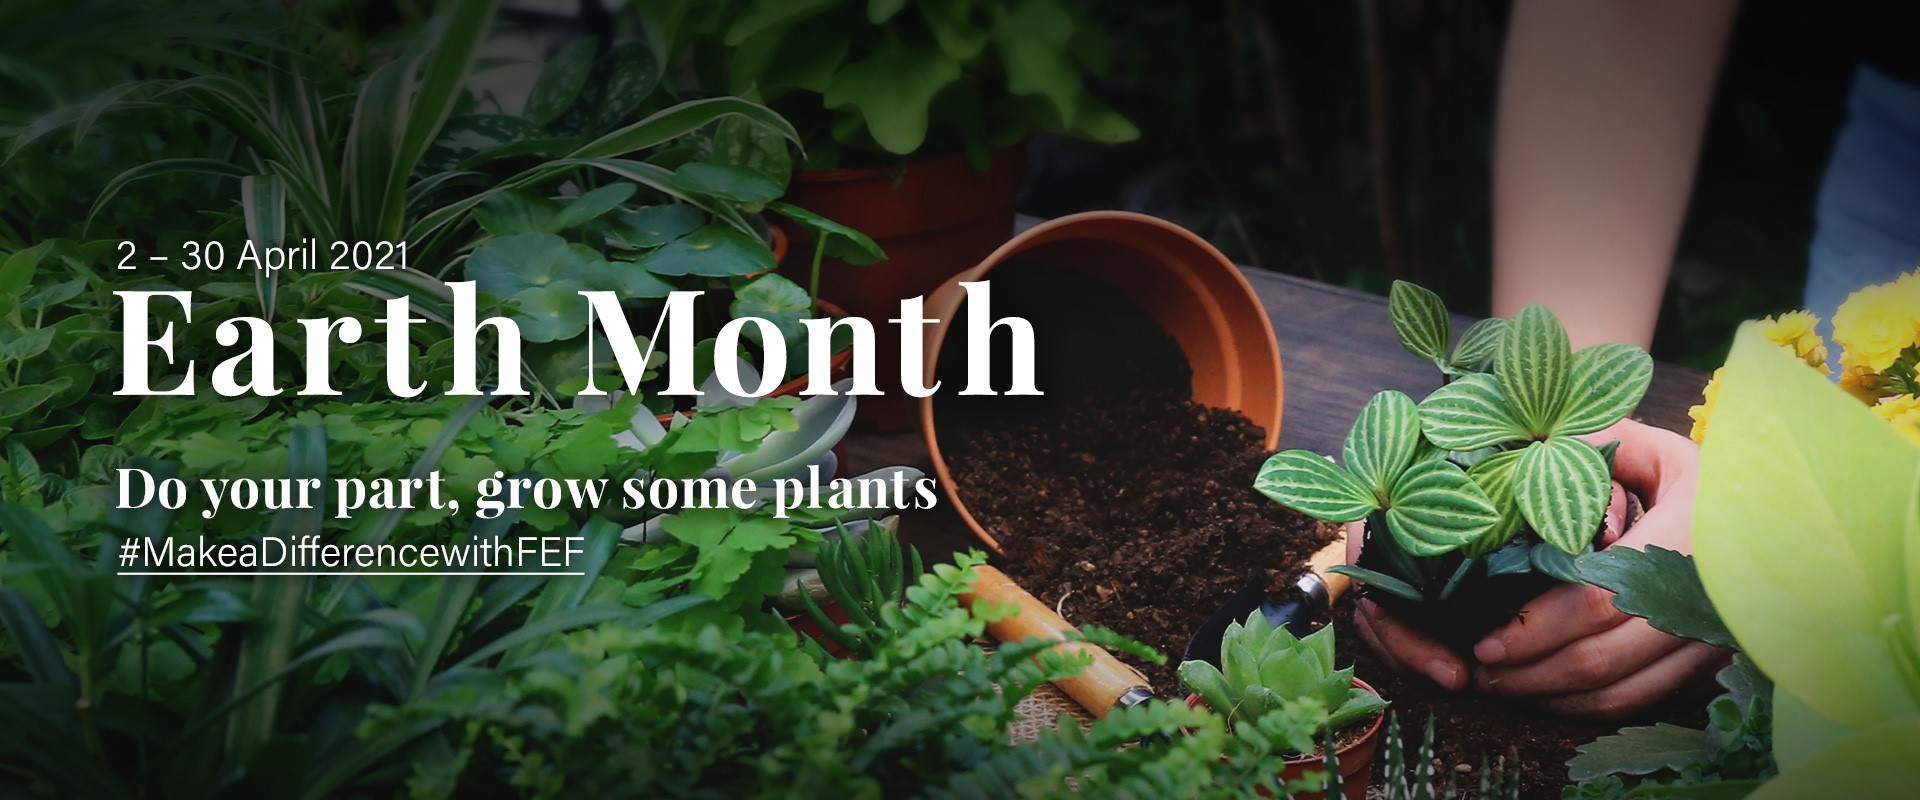 Earth Month 2021